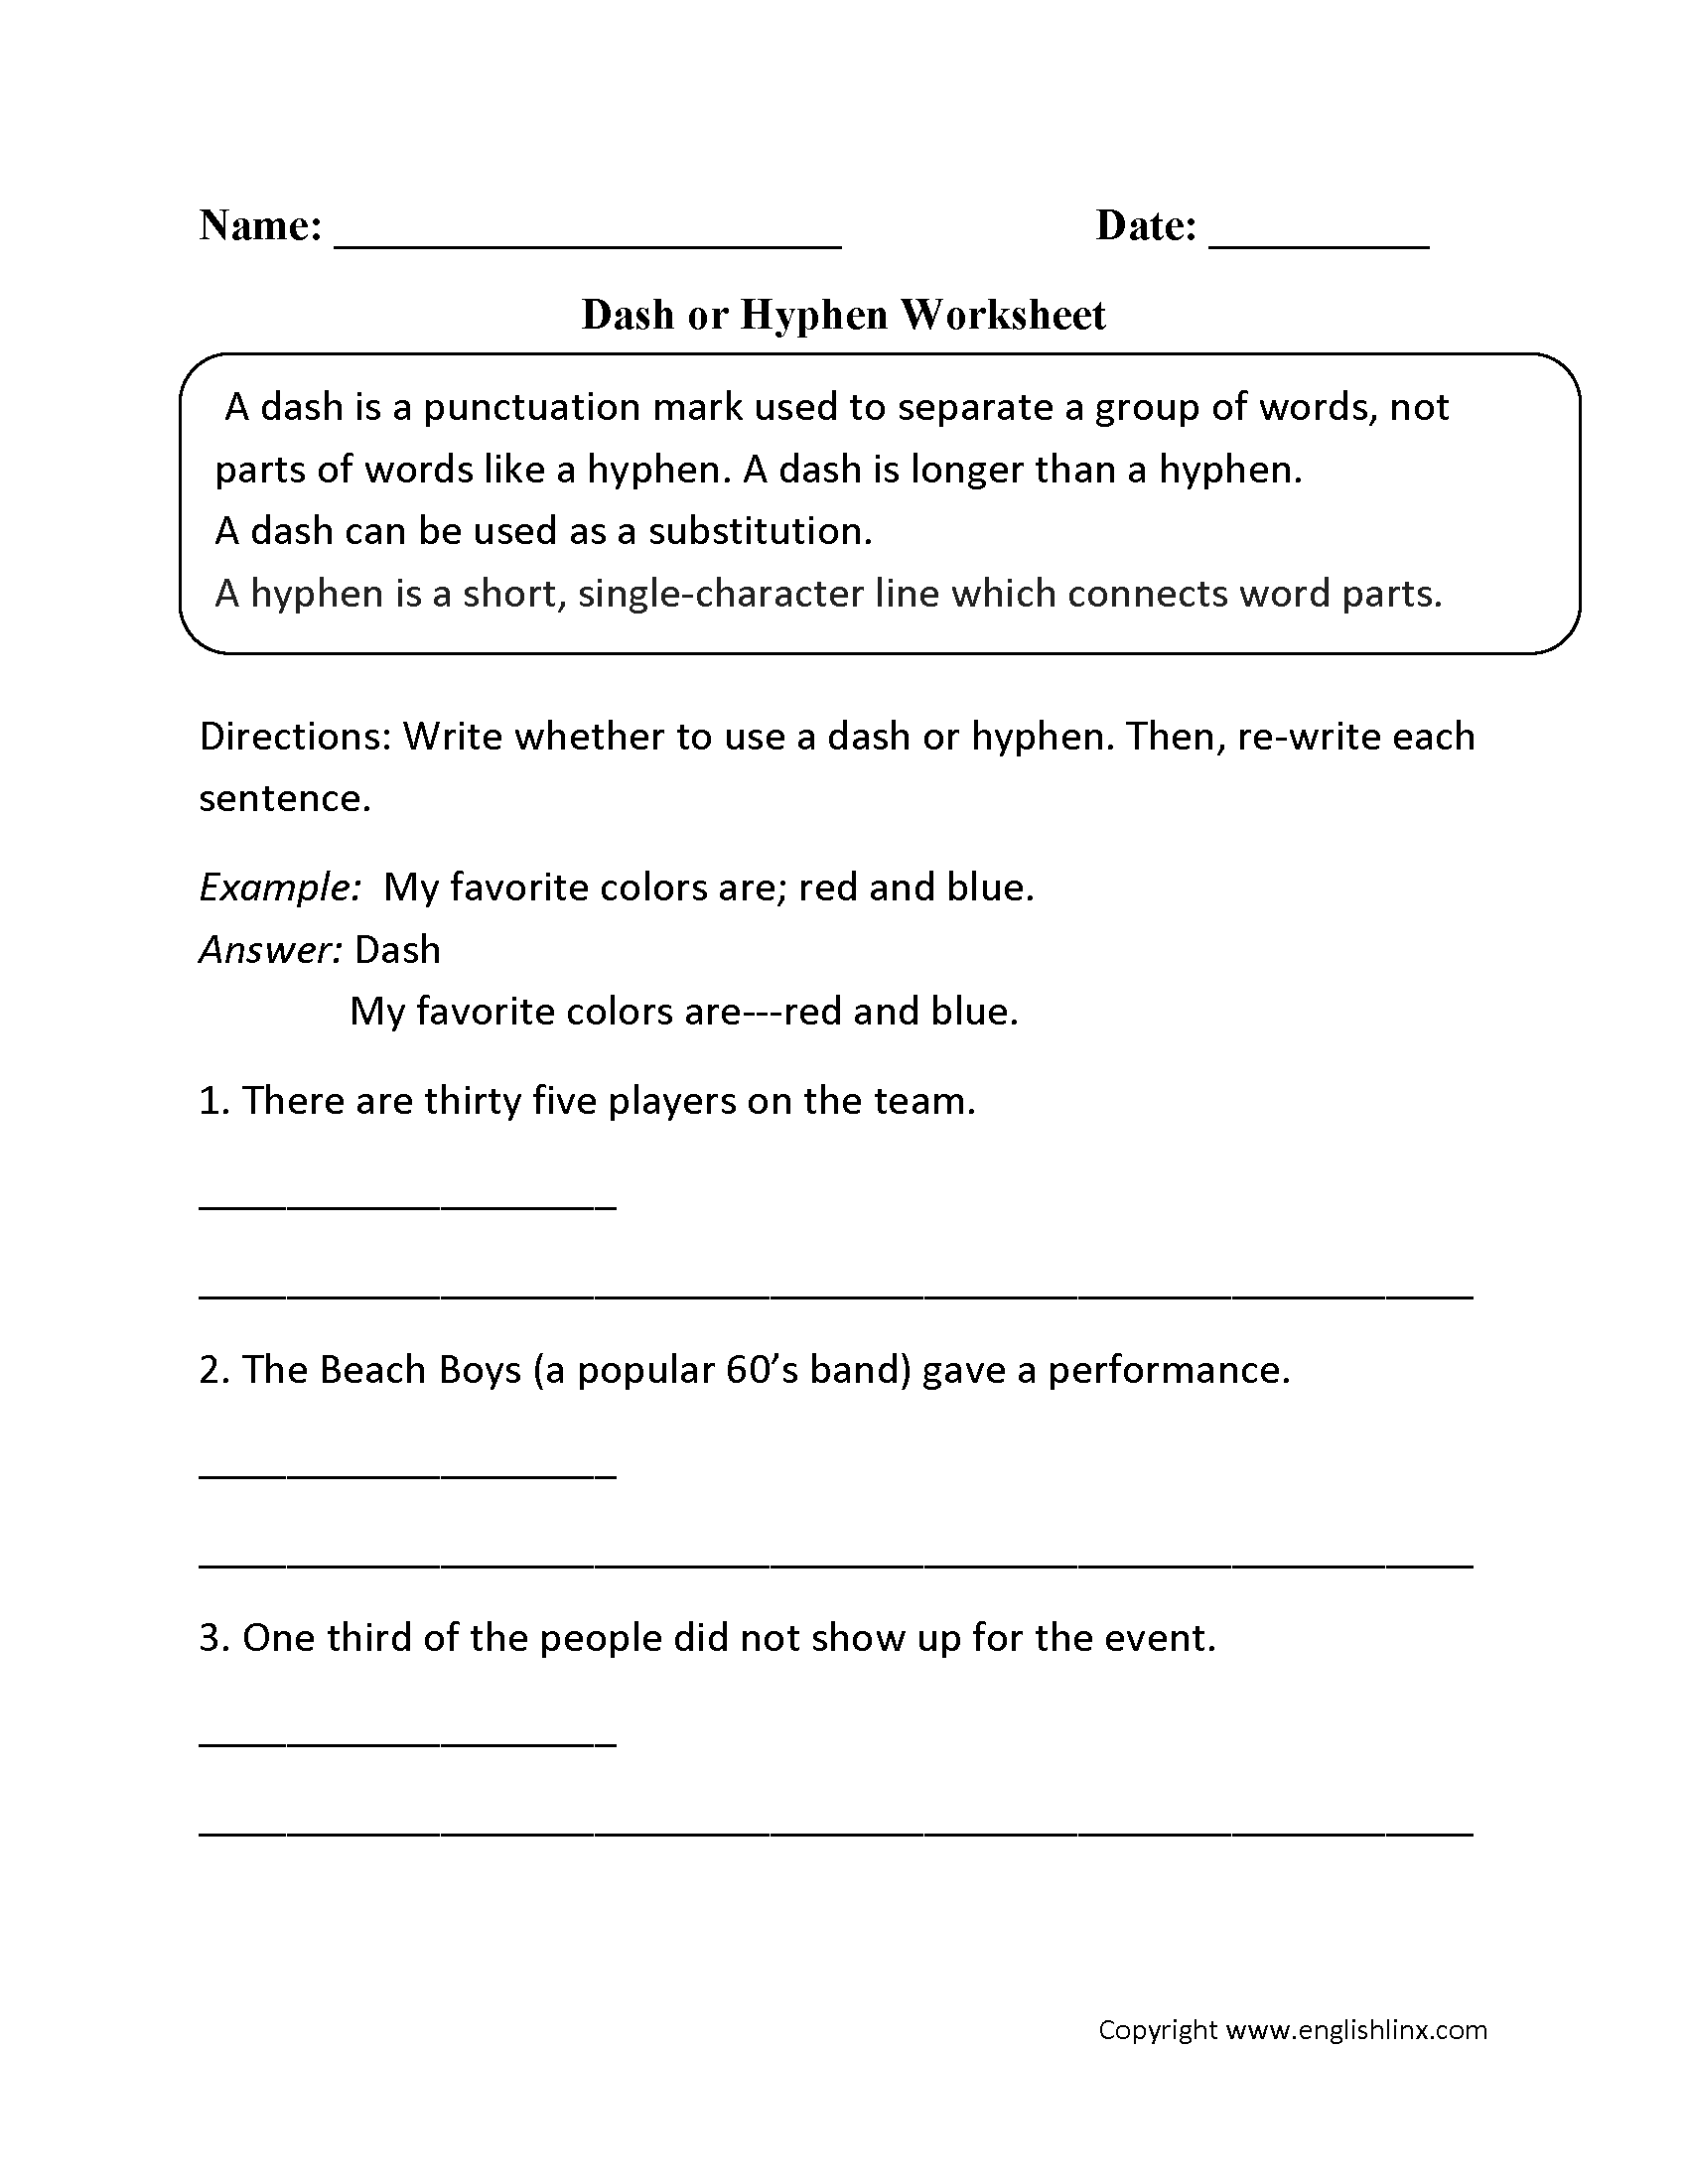 worksheet Quotations Worksheet punctuation worksheets dash worksheets